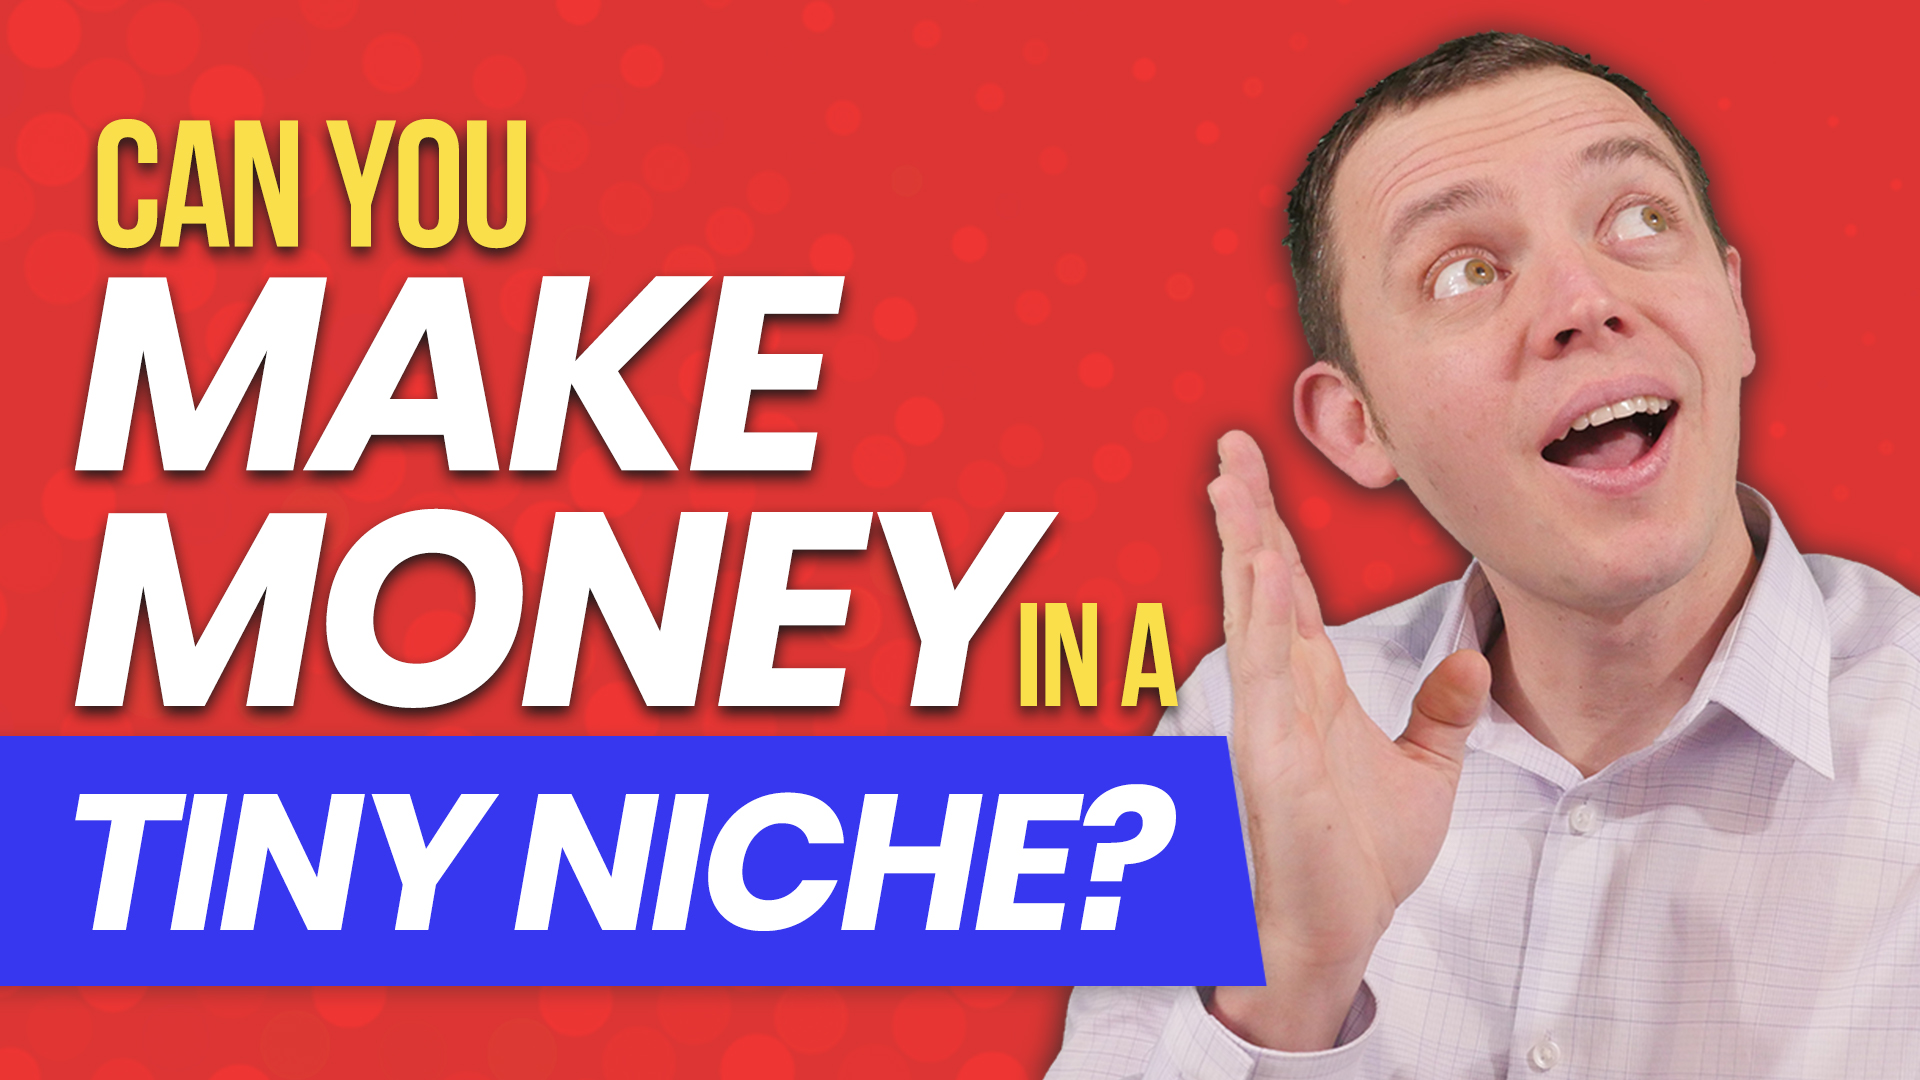 Can You Make Money in a Small or Tiny Niche